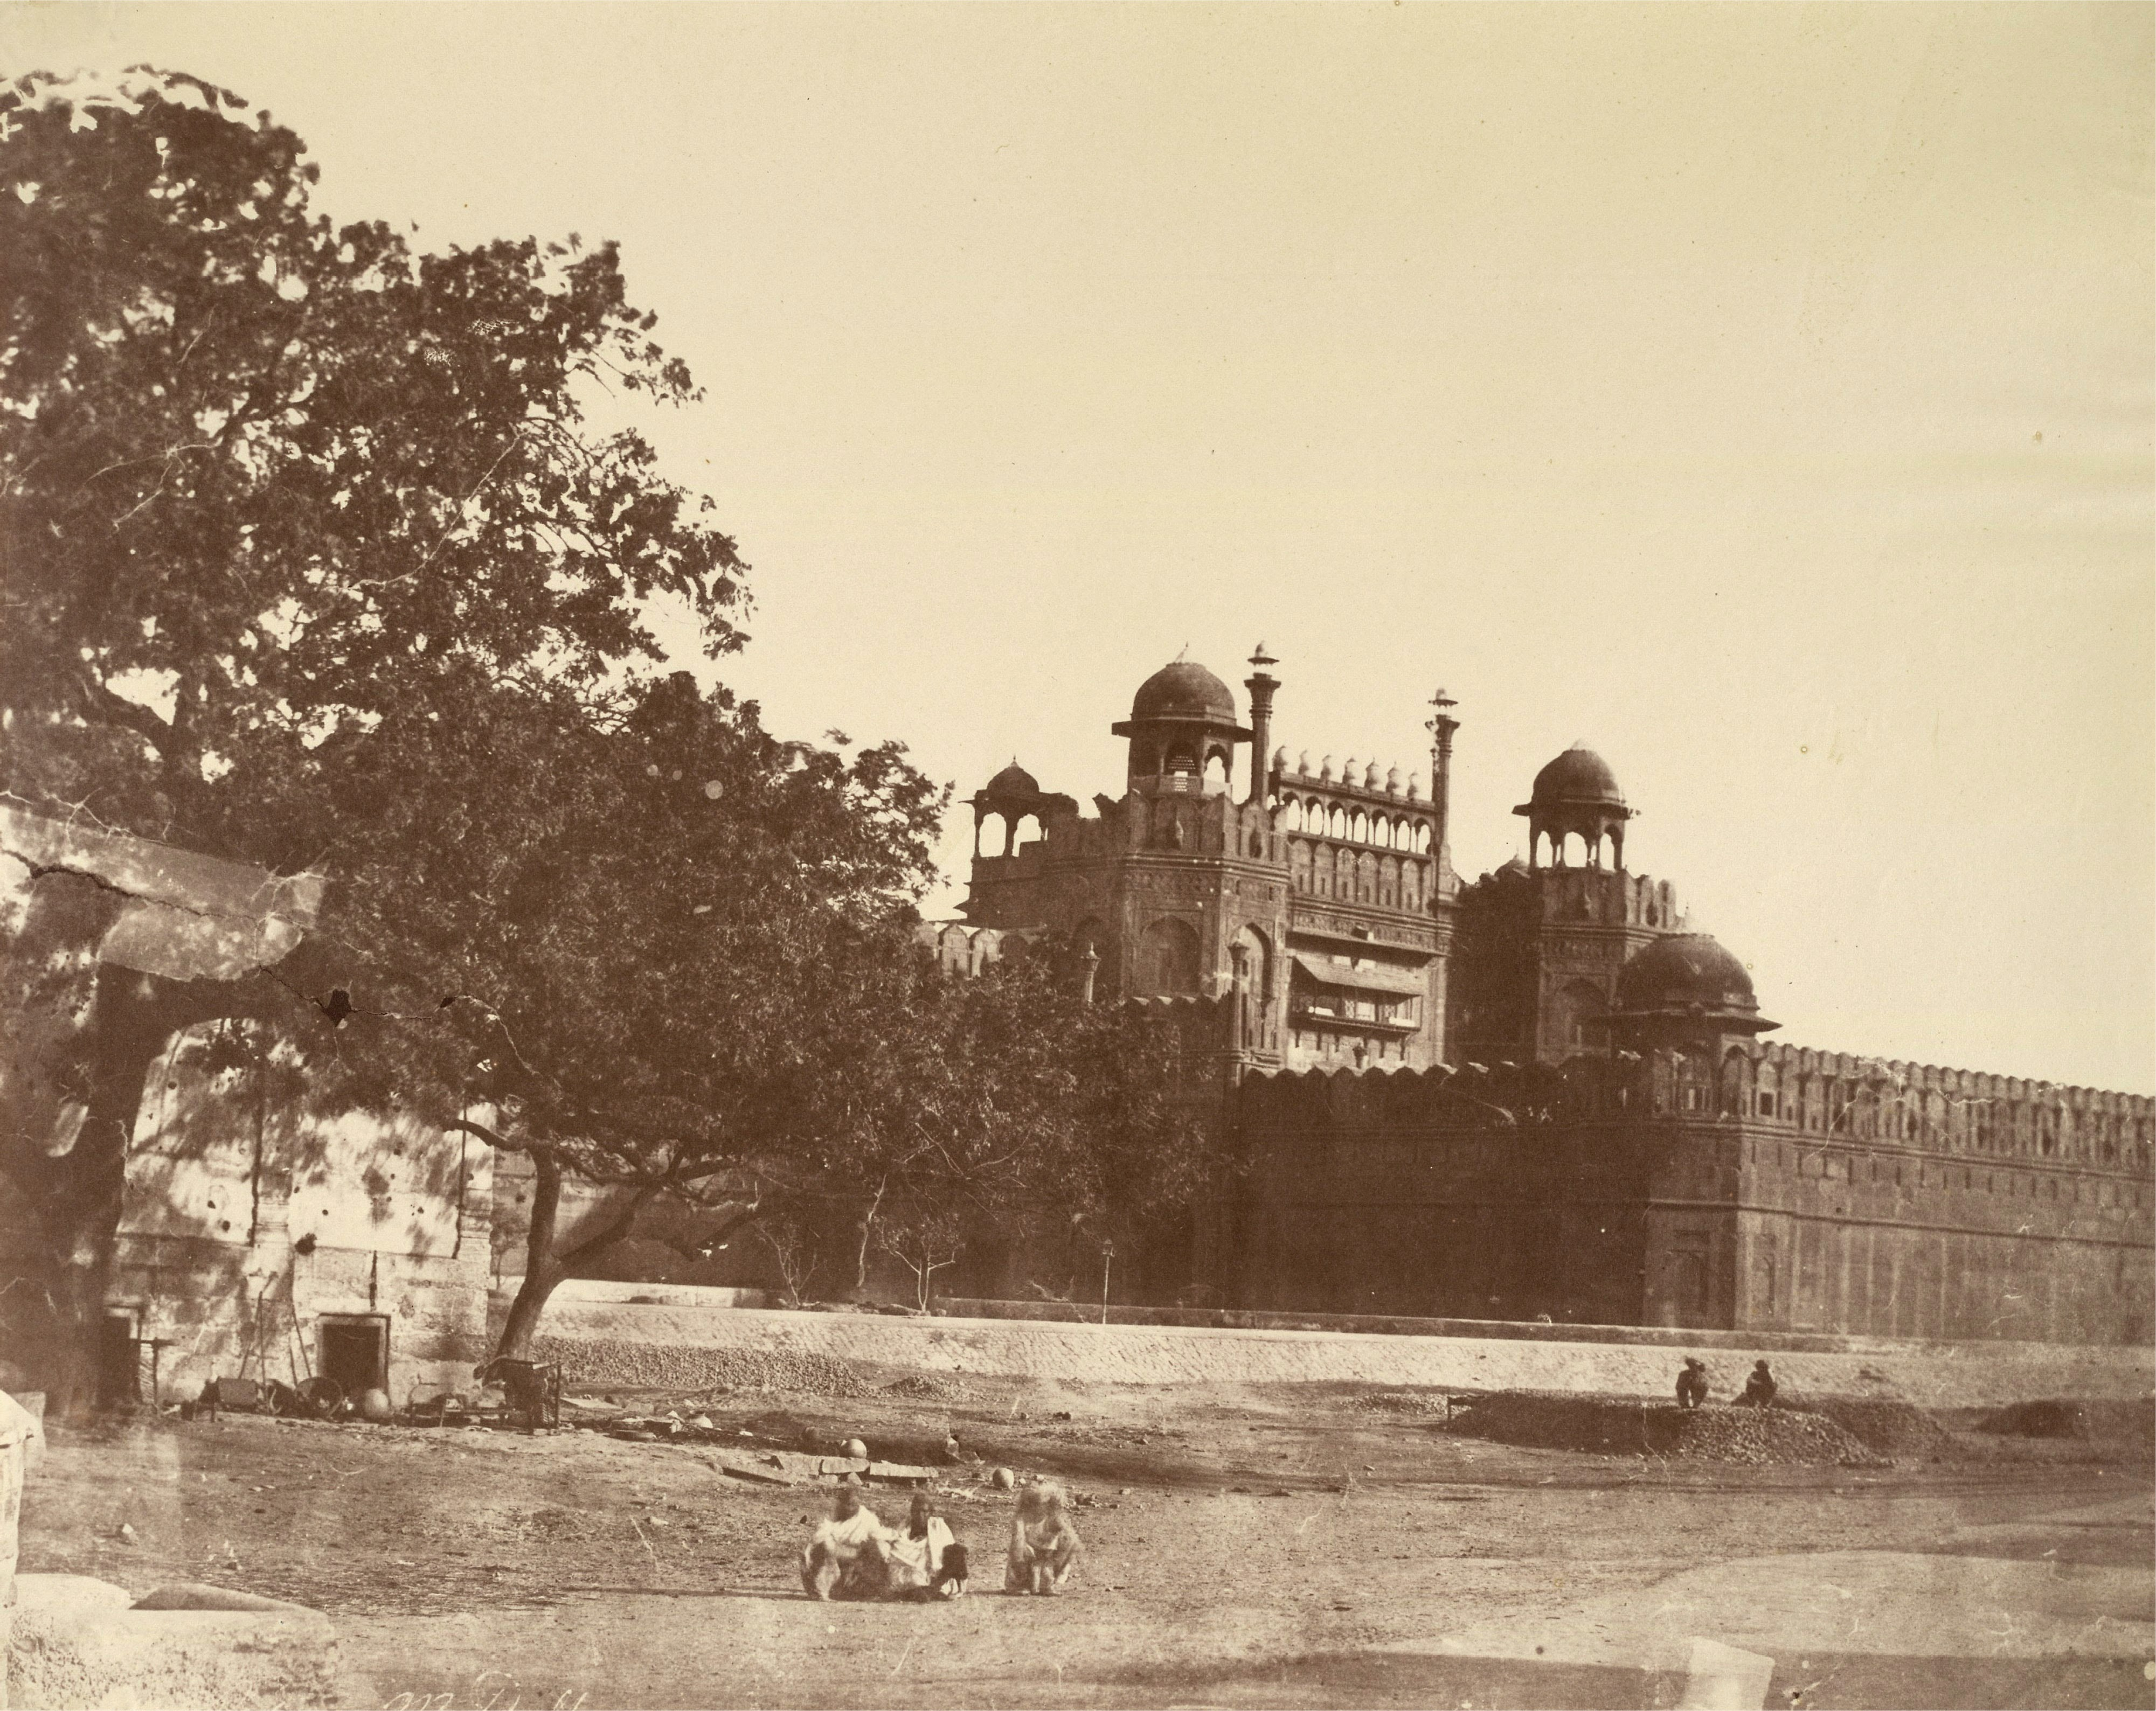 The Lahore Gate Western Gate Of Red Fort Or Lal Qila